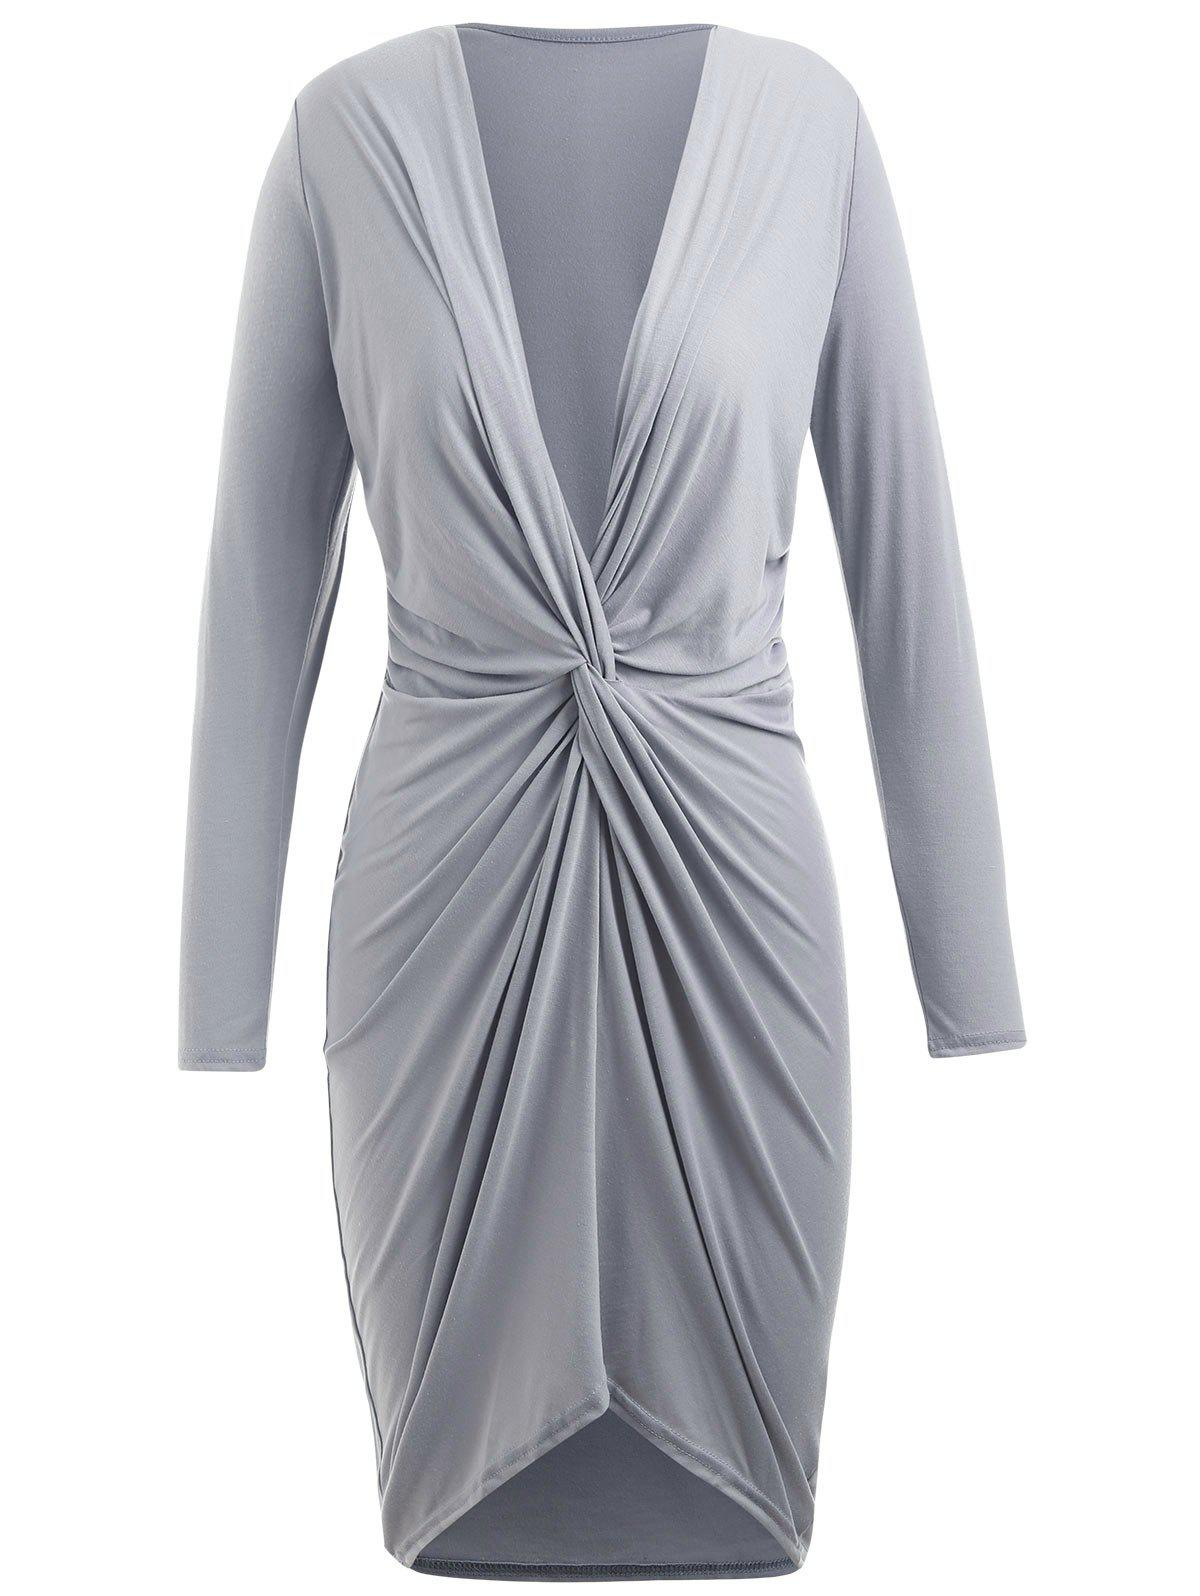 Buy Knotted Front Full Sleeve Asymmetrical Dress